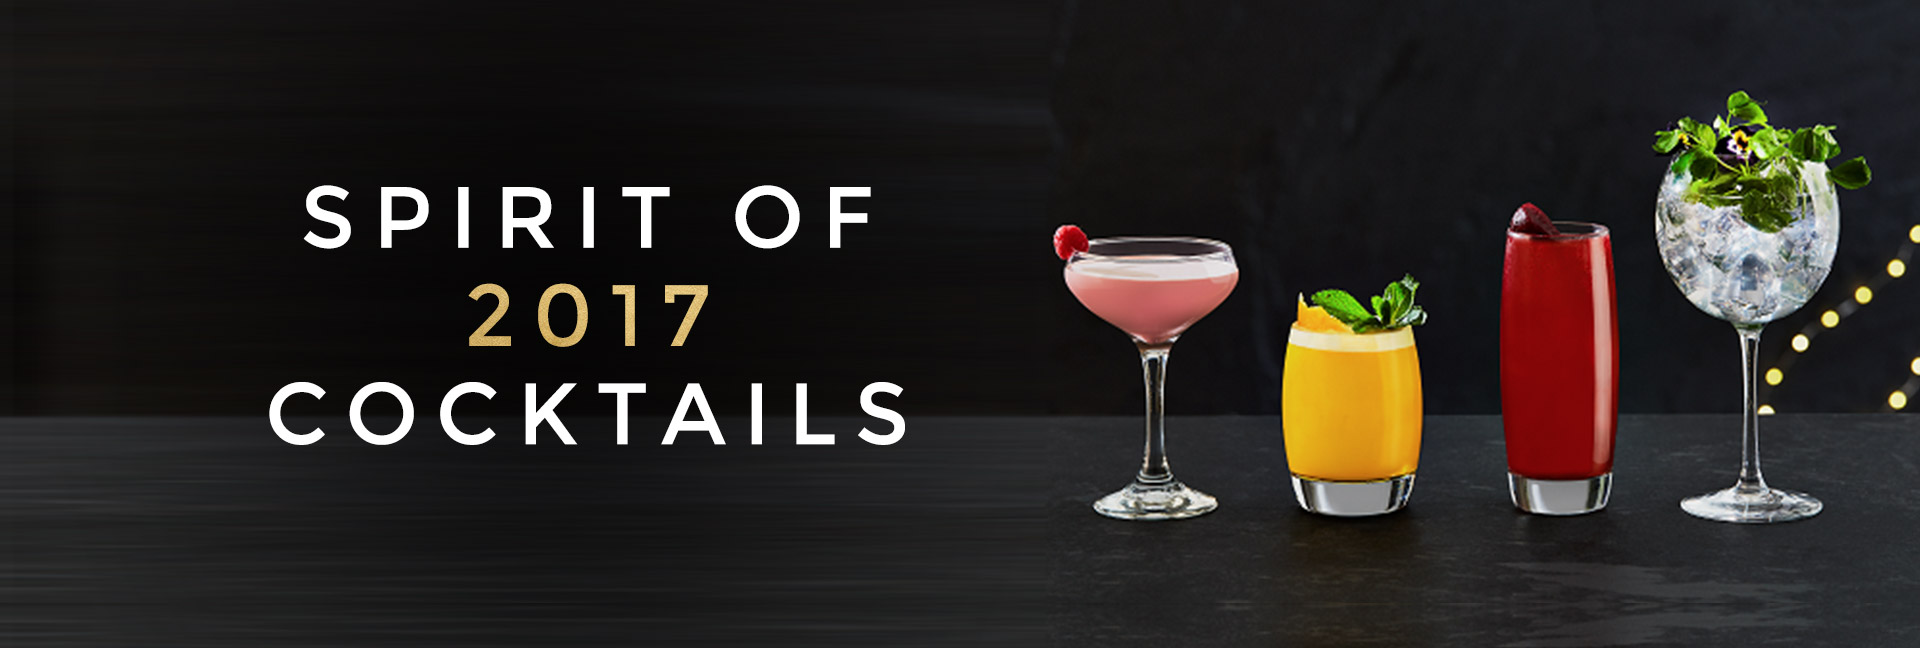 Spirit of 2017 cocktails at All Bar One Southampton